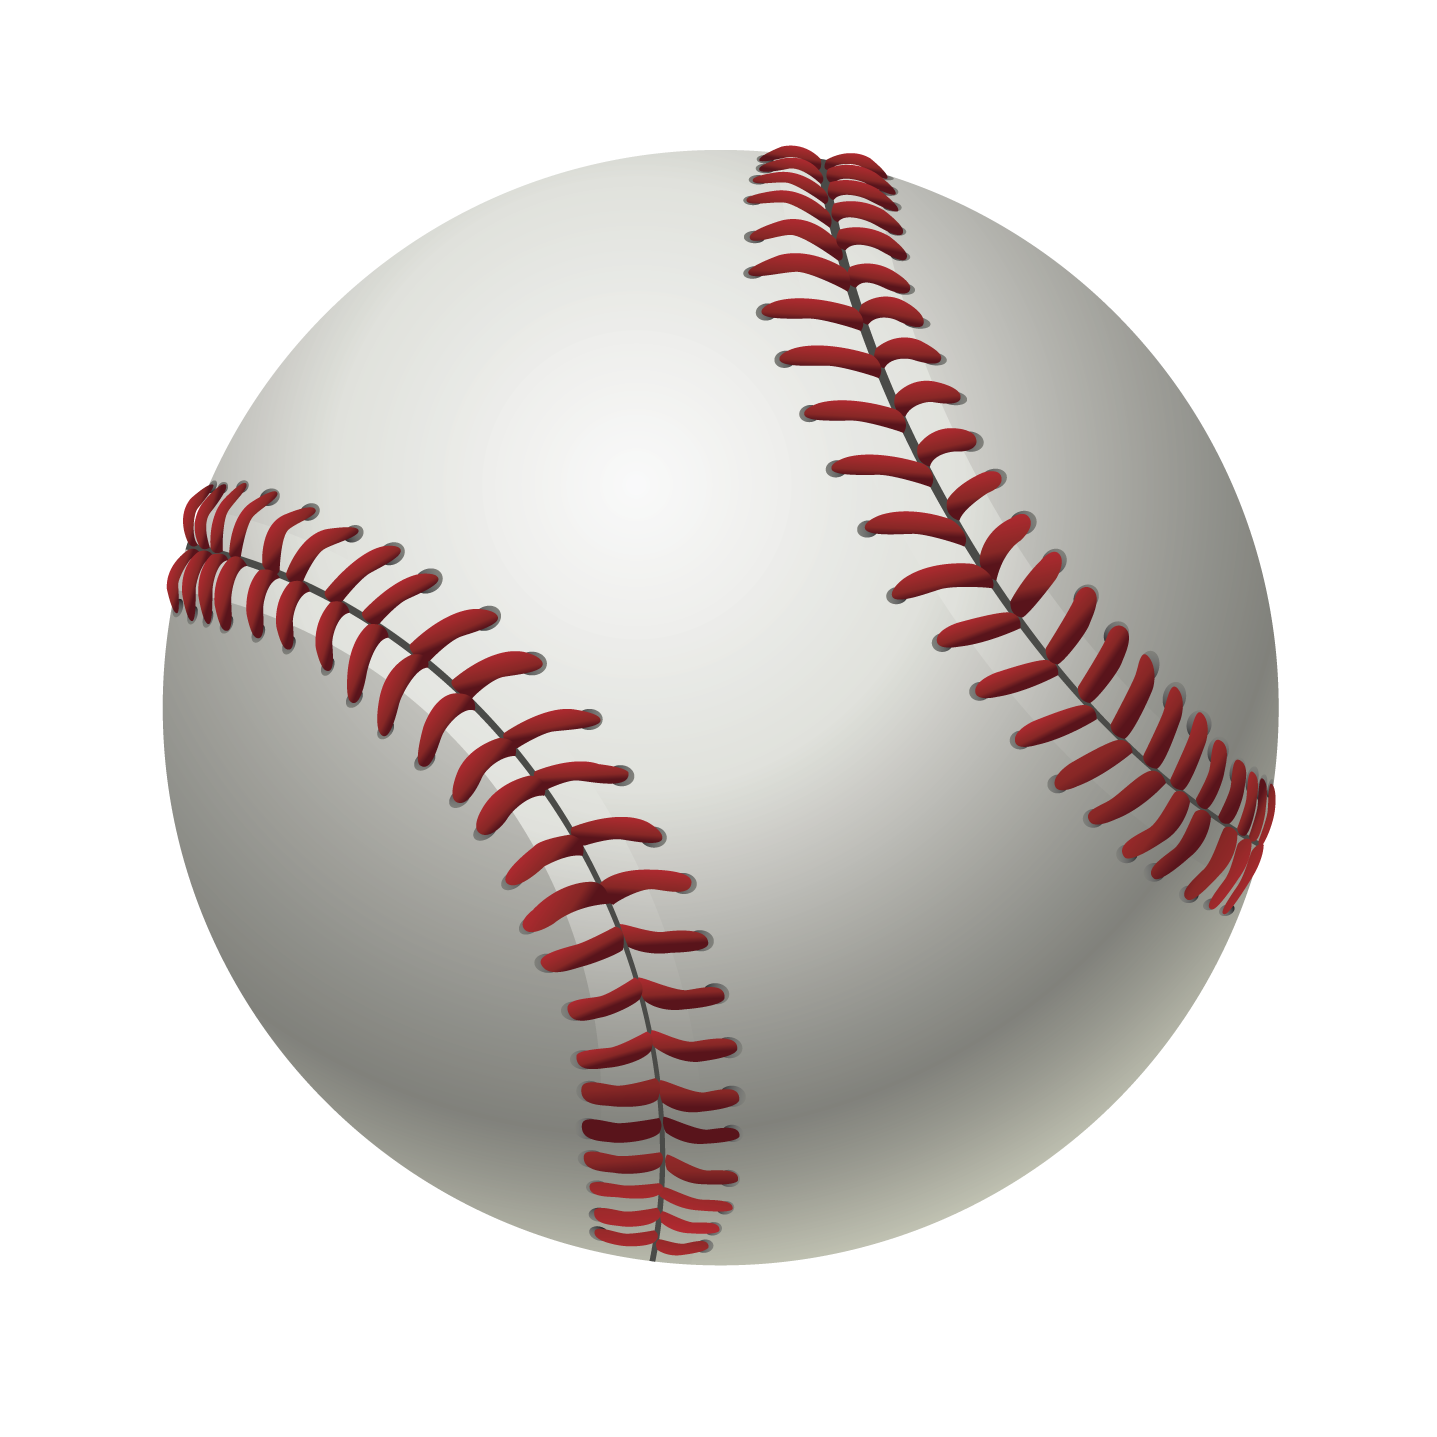 Sports clipart rounders. Baseball png image purepng